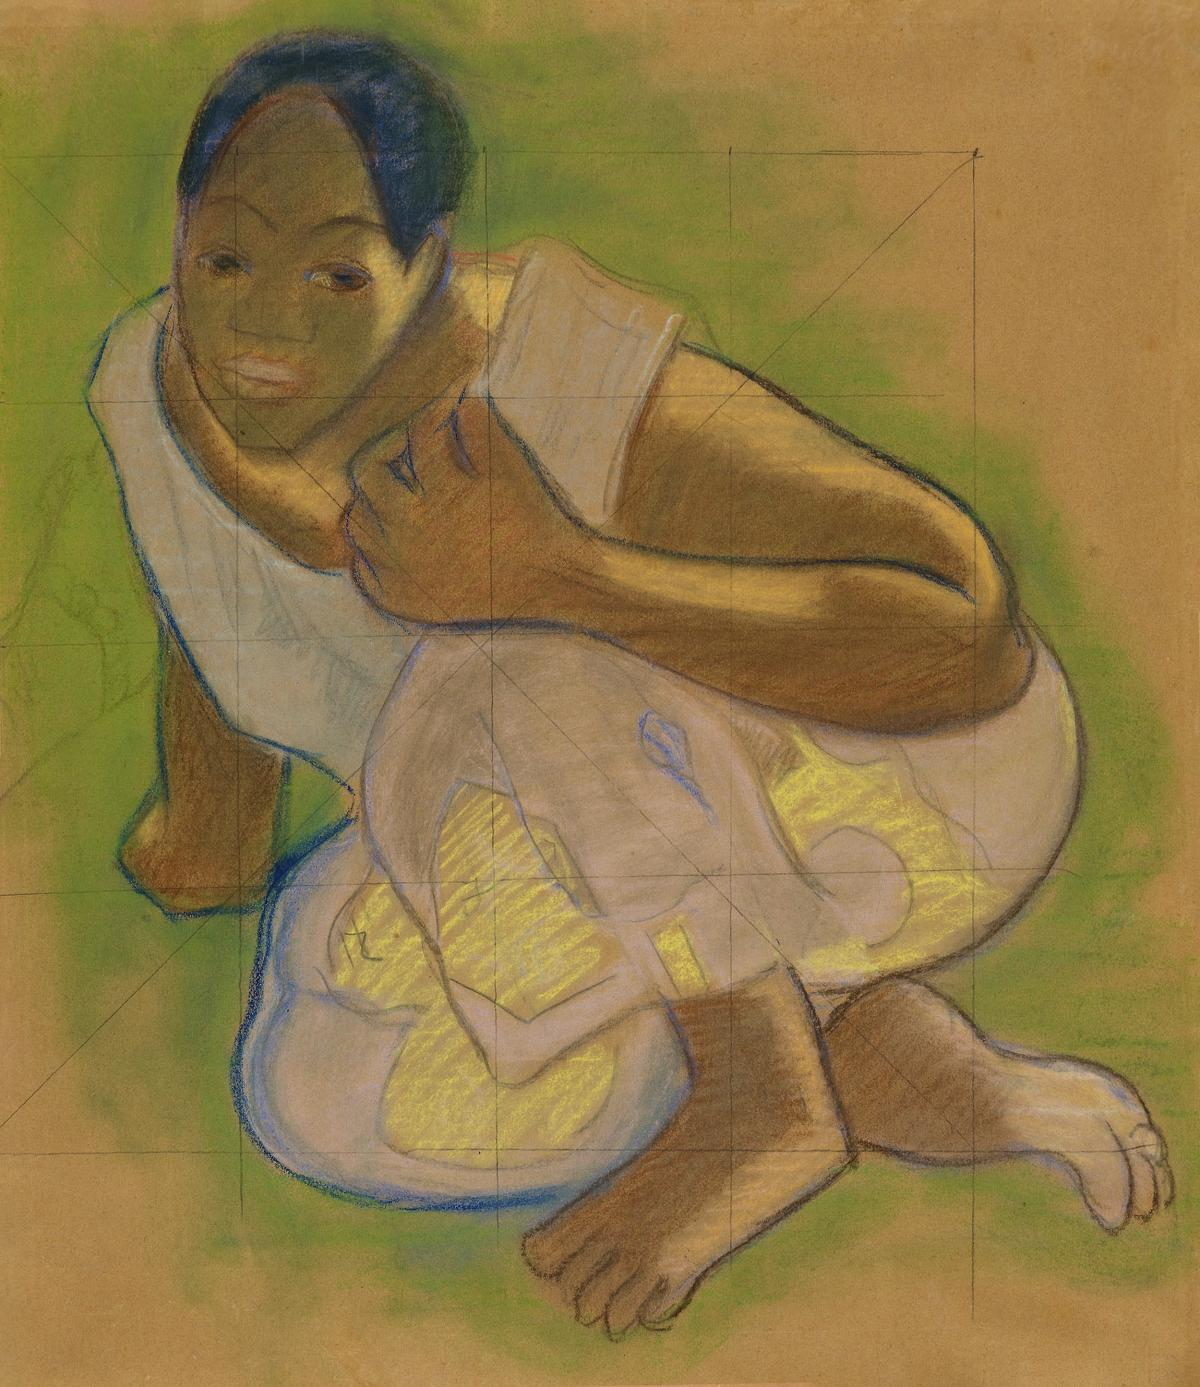 Crouching Tahitian Woman (related to the painting Nafea faa ipoipo [When Will You Marry?]) (ca. 1891–1893) by Paul Gauguin. Original from The Art Institute of Chicago.